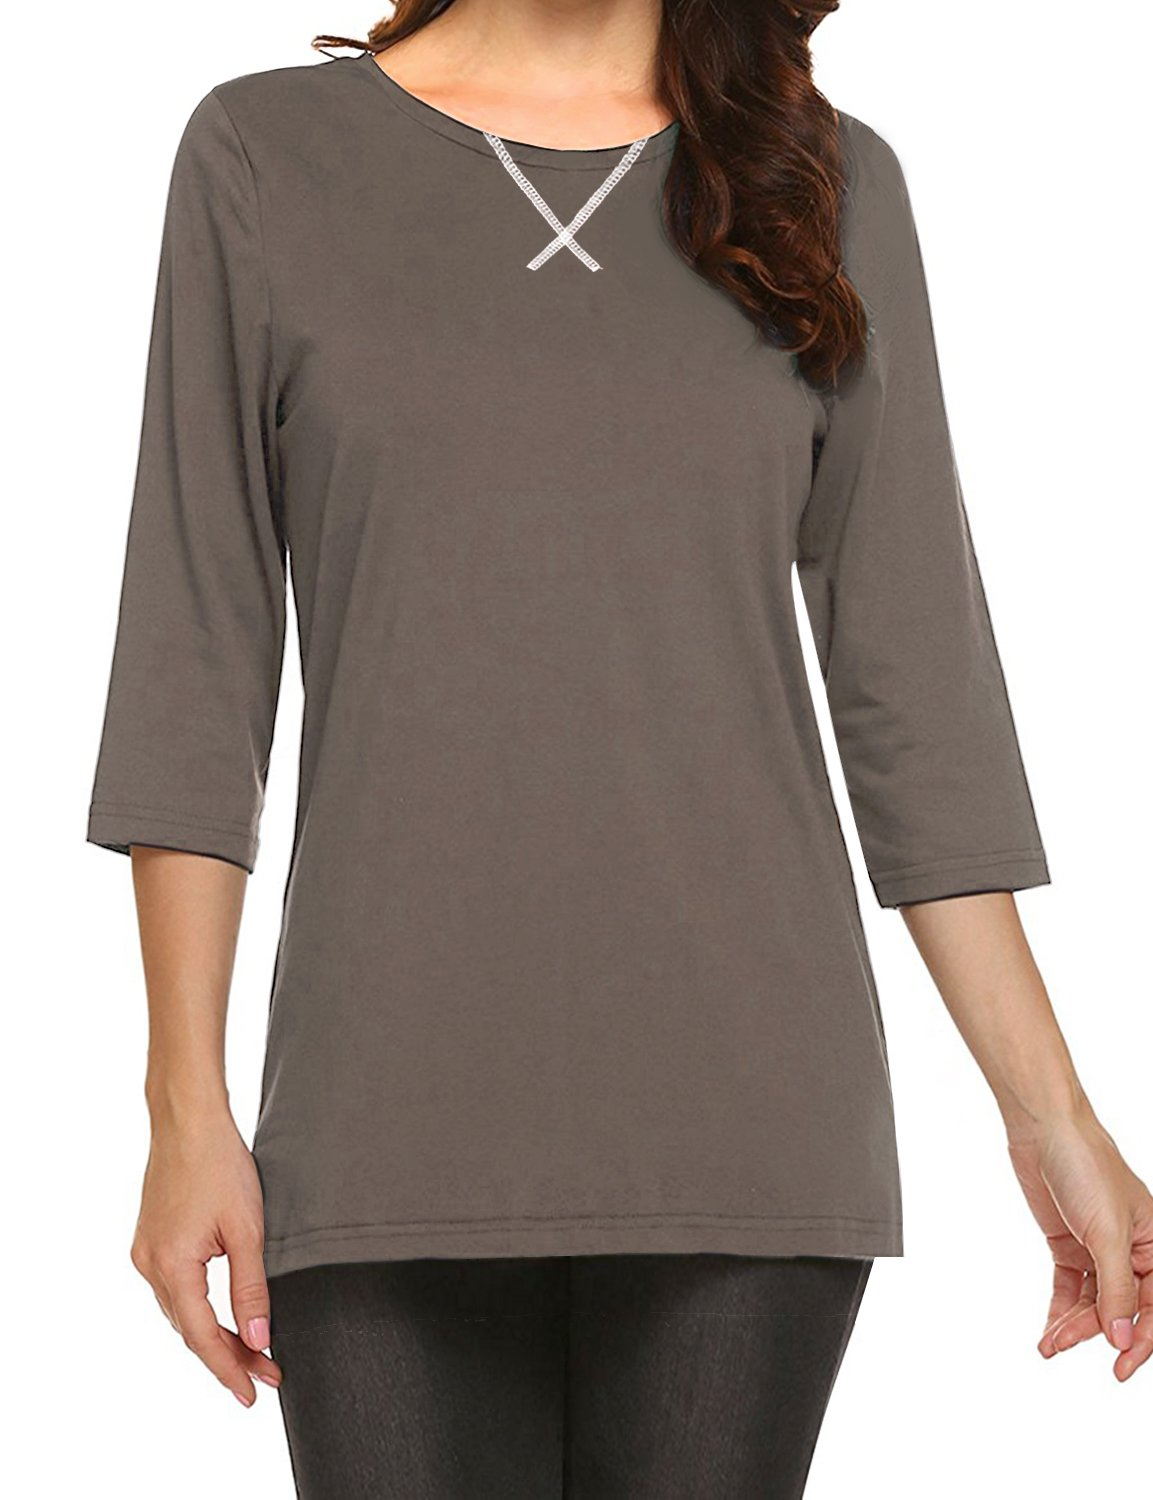 Regna X Women's Basic Loose fit Maternity Short Sleeve Top Tee Taupe 3XL